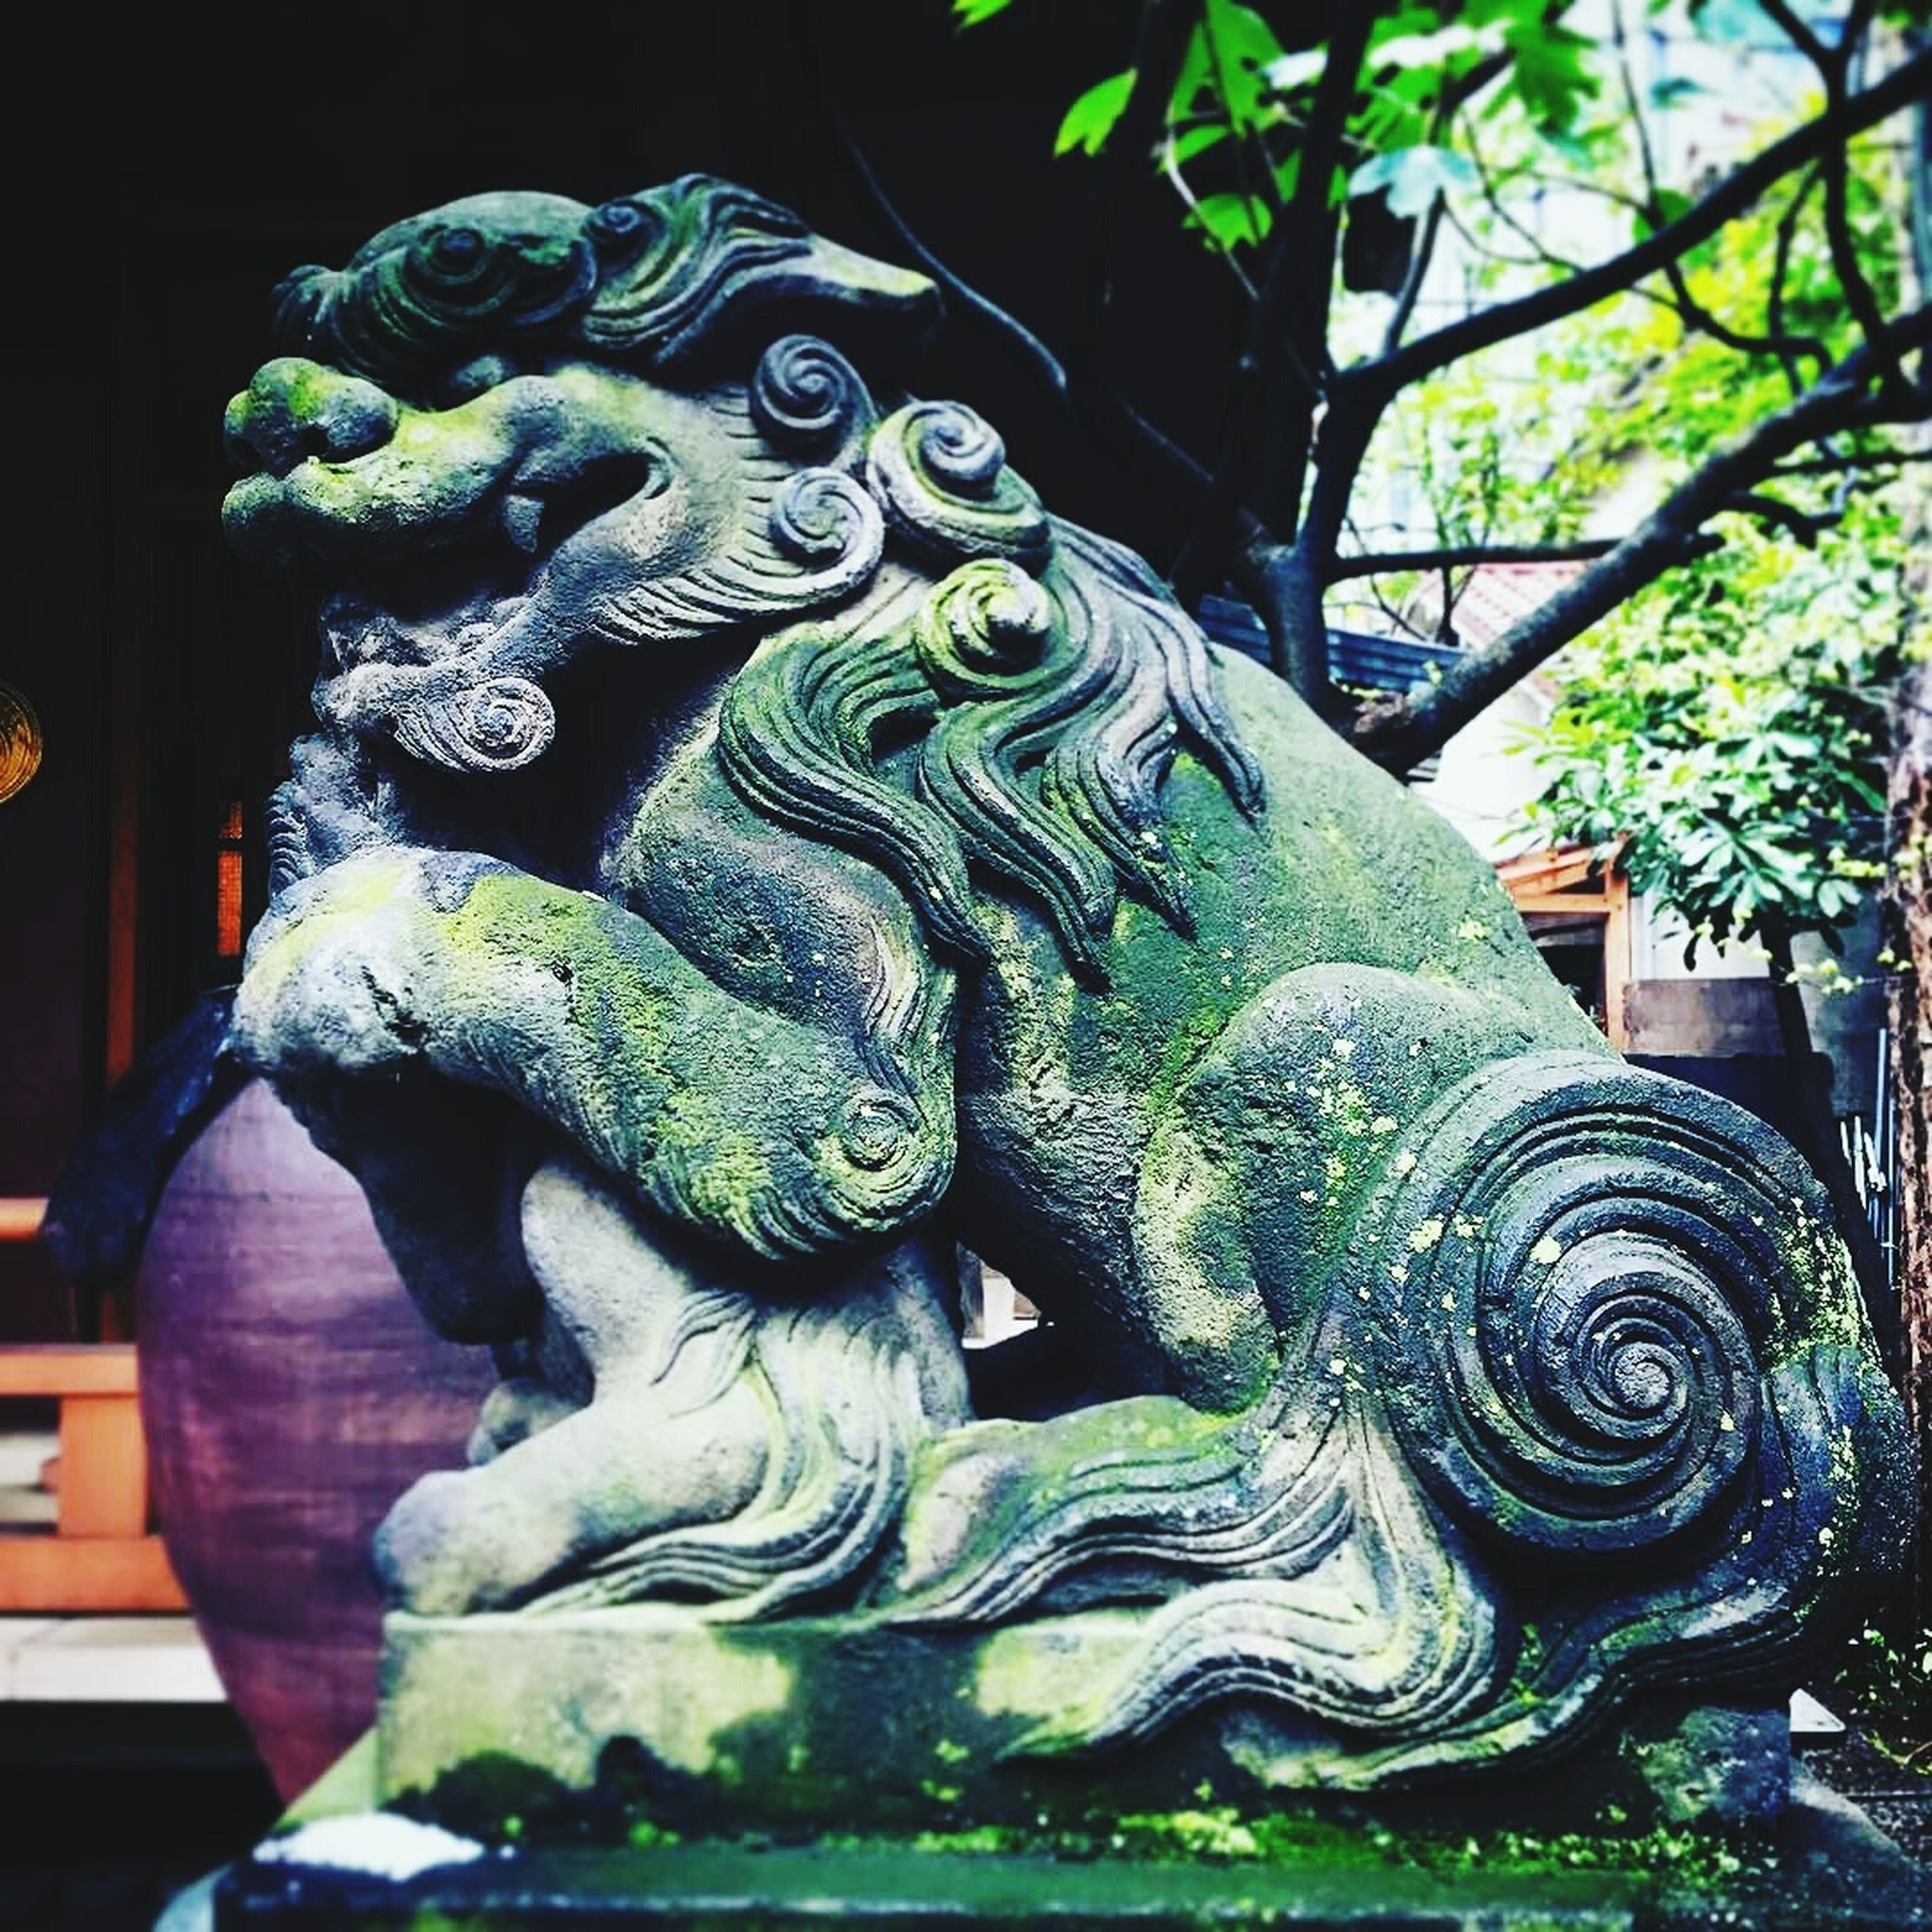 animal representation, art and craft, sculpture, statue, animal themes, no people, outdoors, night, chinese dragon